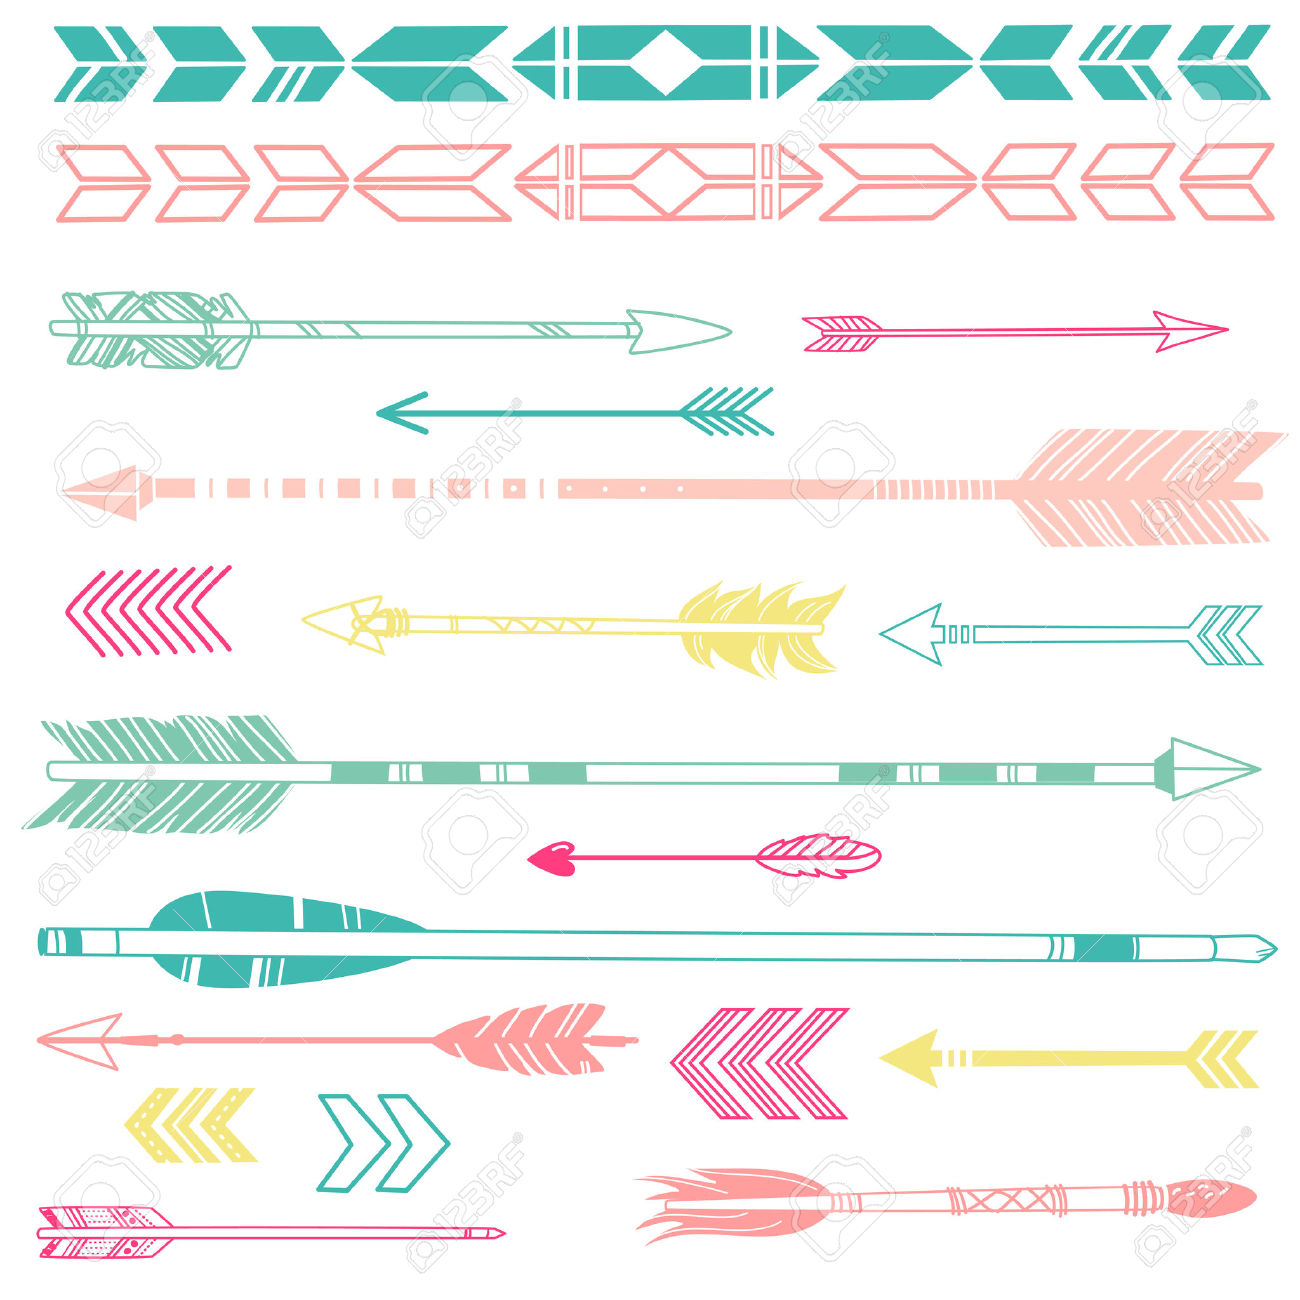 Cute arrow clipart - ClipartFest free stock